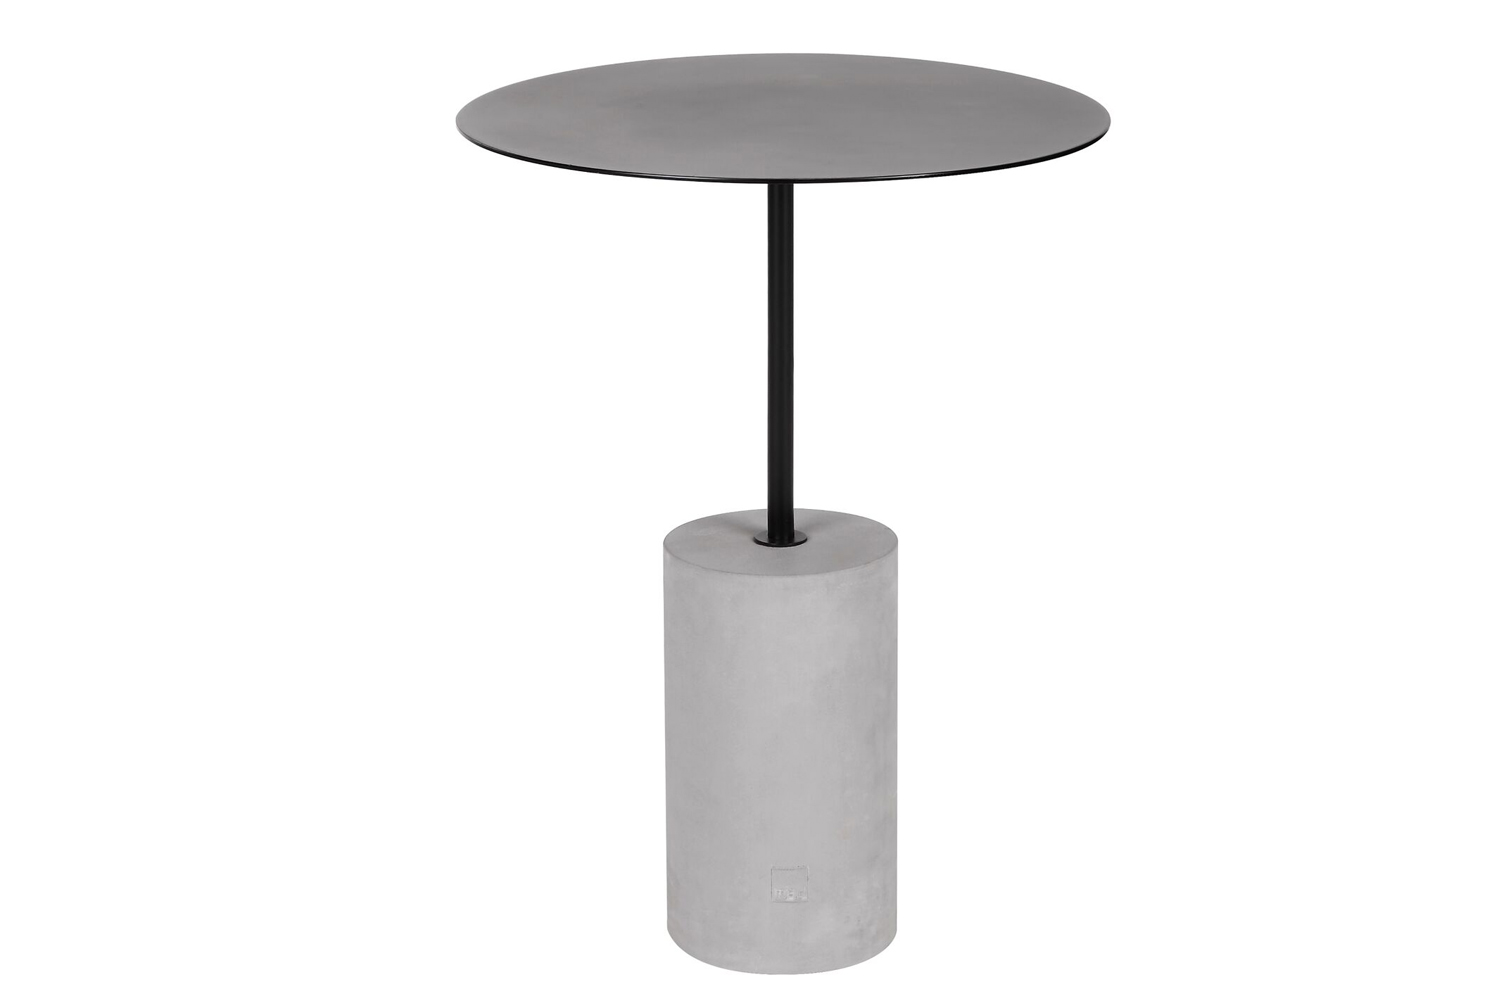 The table has an industrial-inspired cast concrete cylinder base that fuses with a round table top.